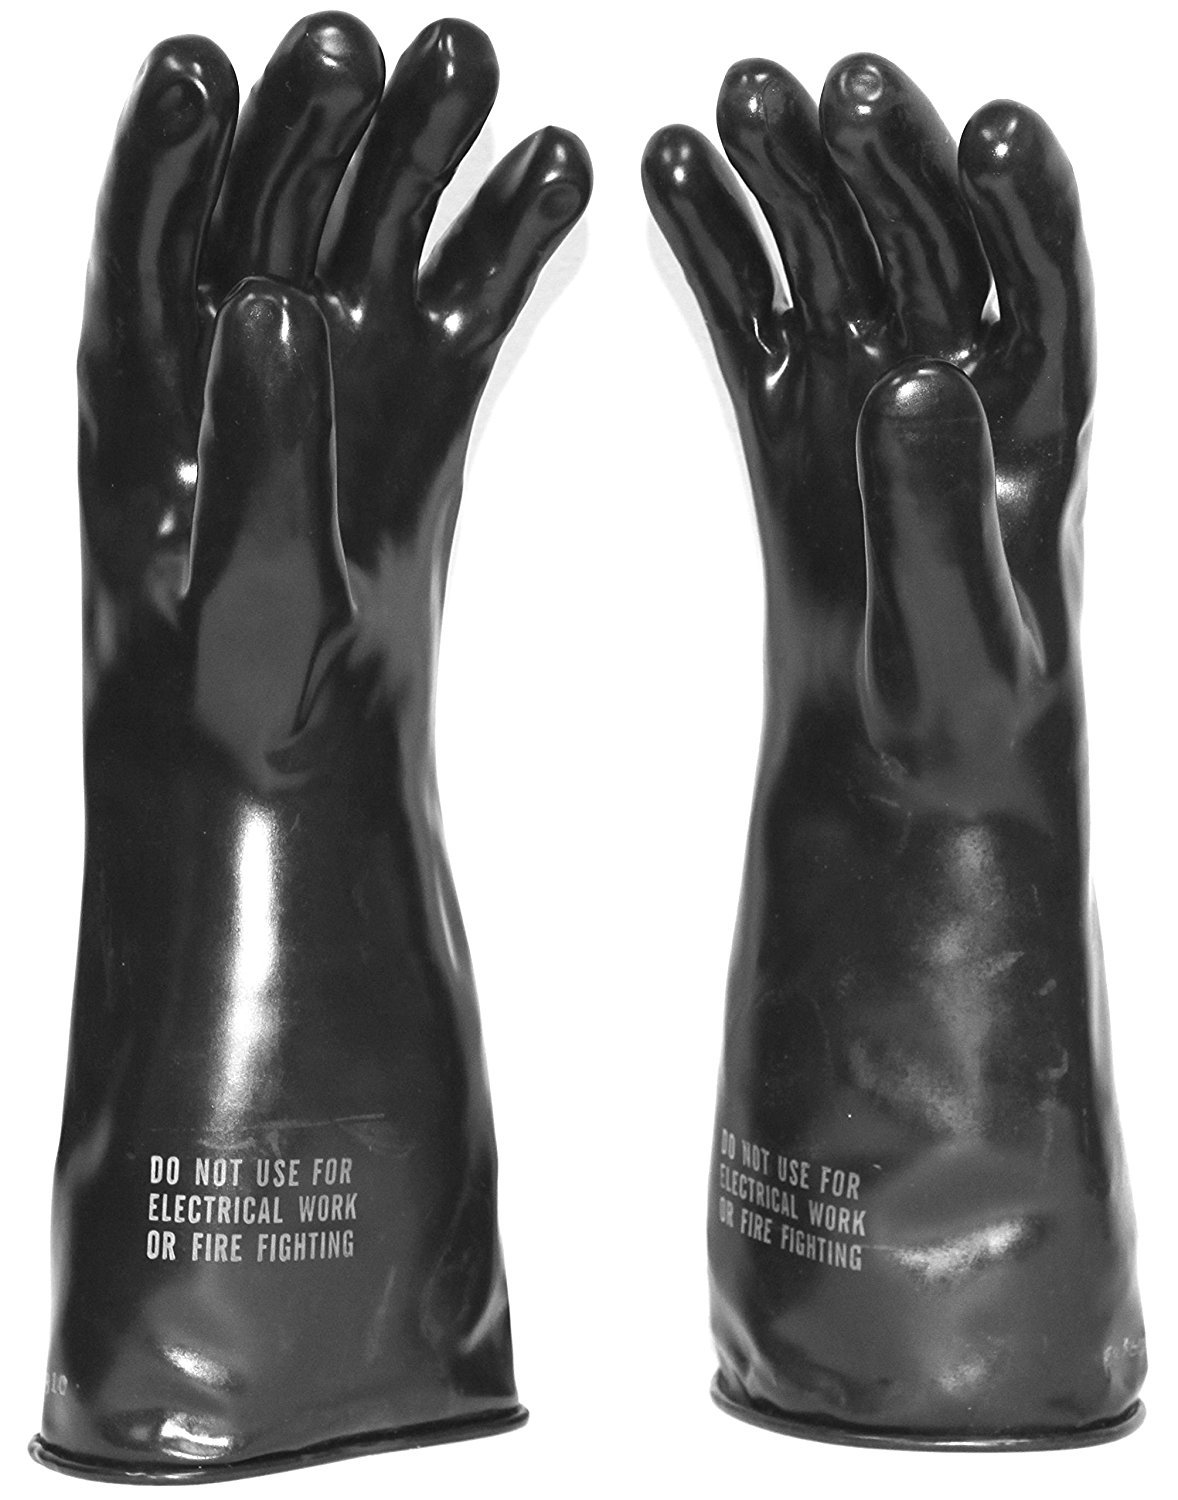 Butyl Rubber Gloves (Chemical Resistant) 12 Per Box (Extra Large) by Sibe North / Brunswick (Image #1)